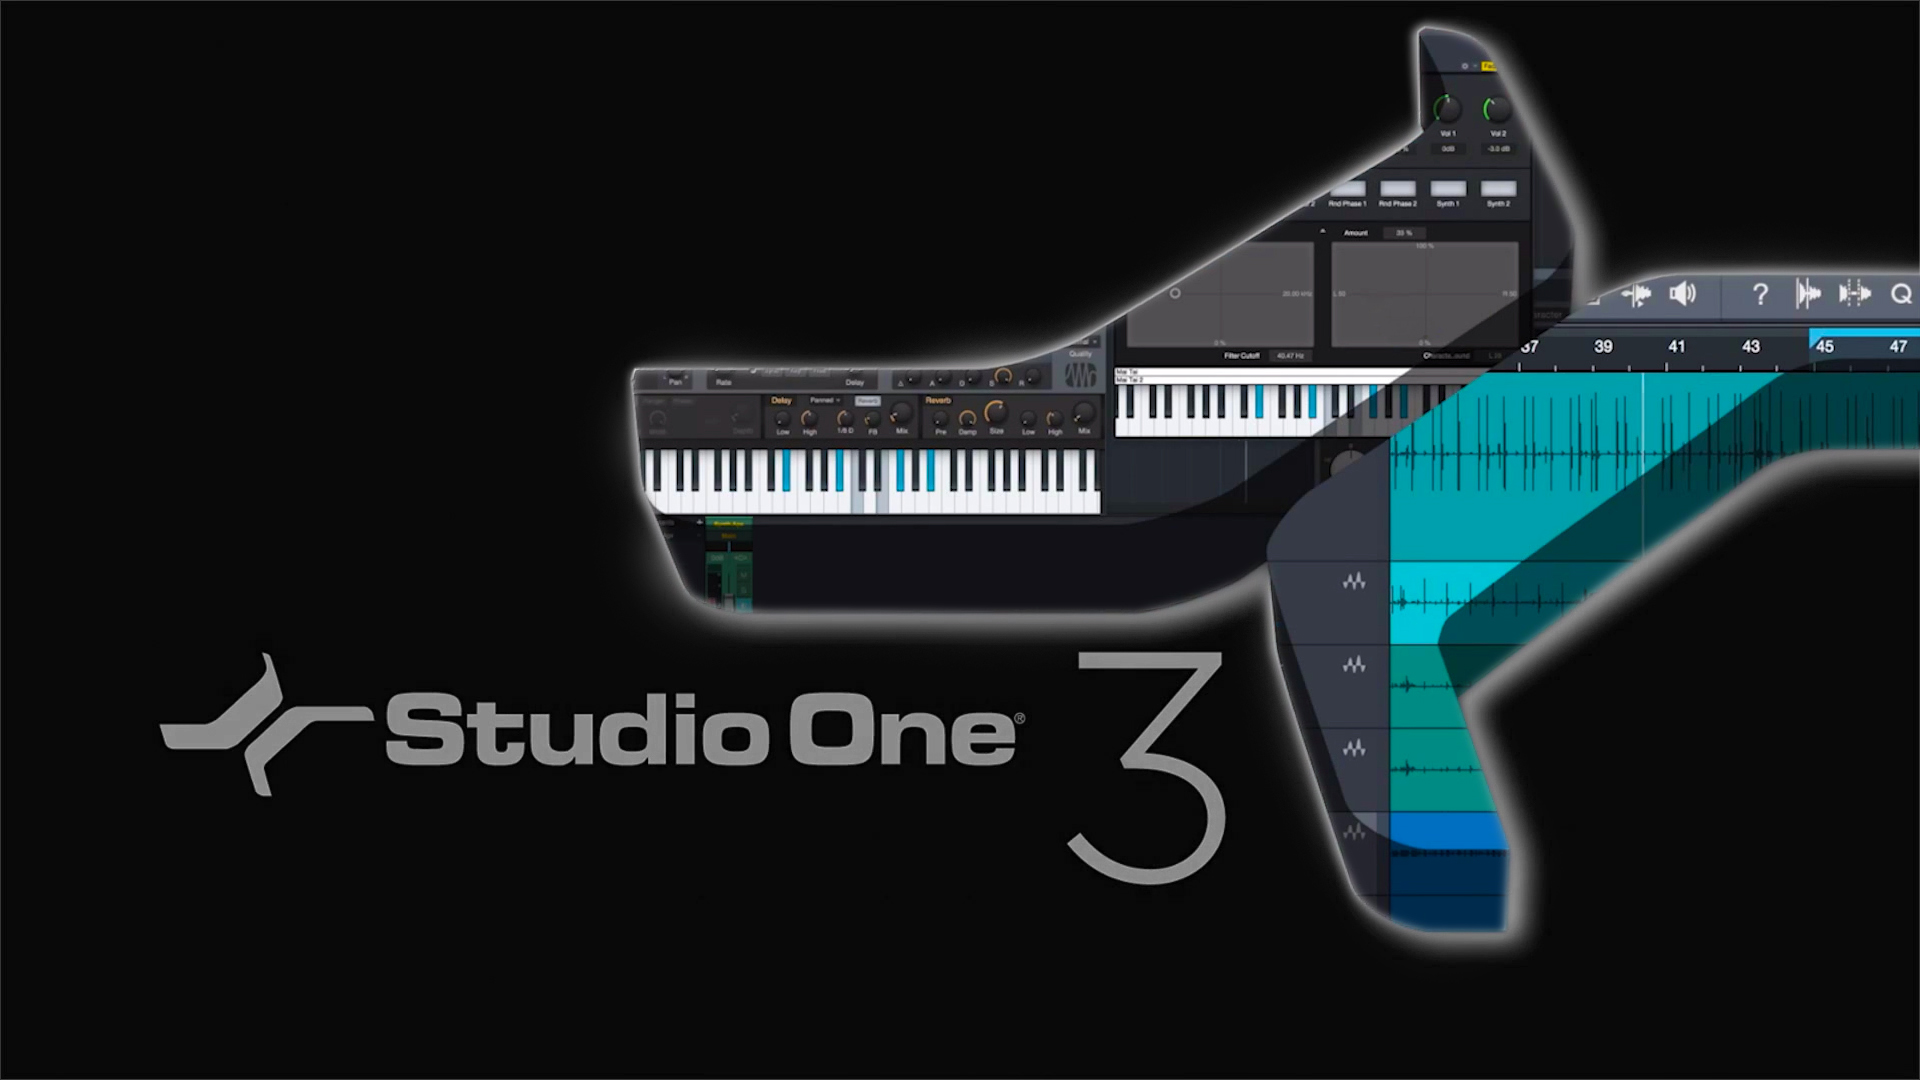 Studio One Wallpaper